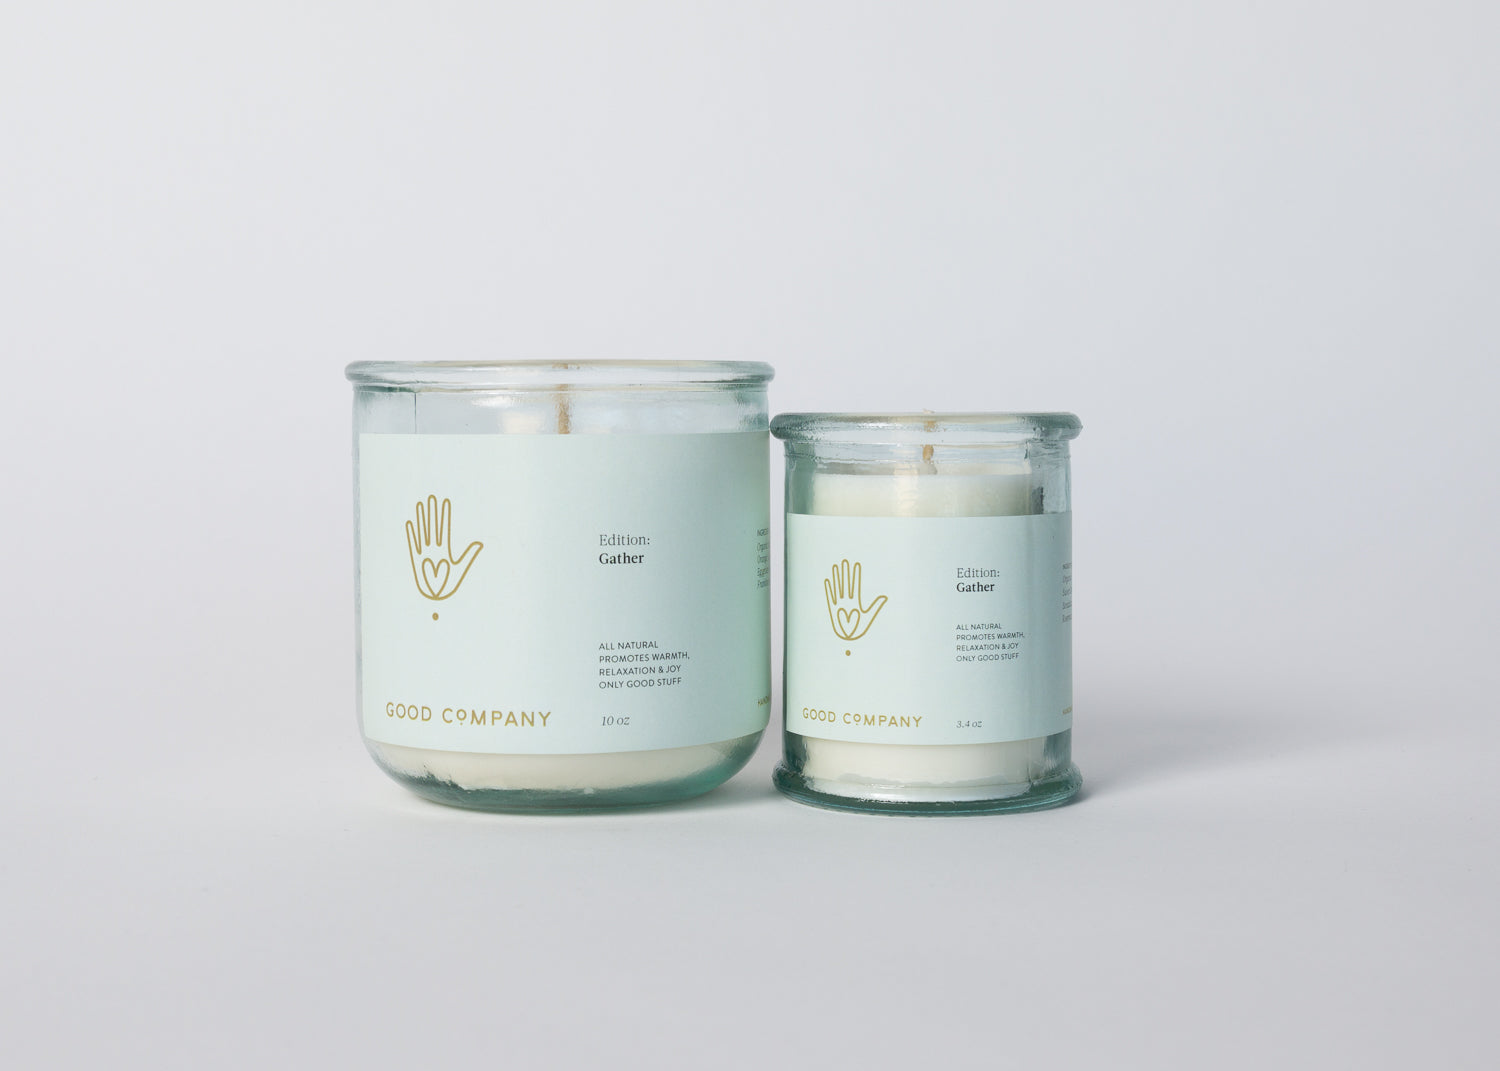 Good Company 10 oz Candle